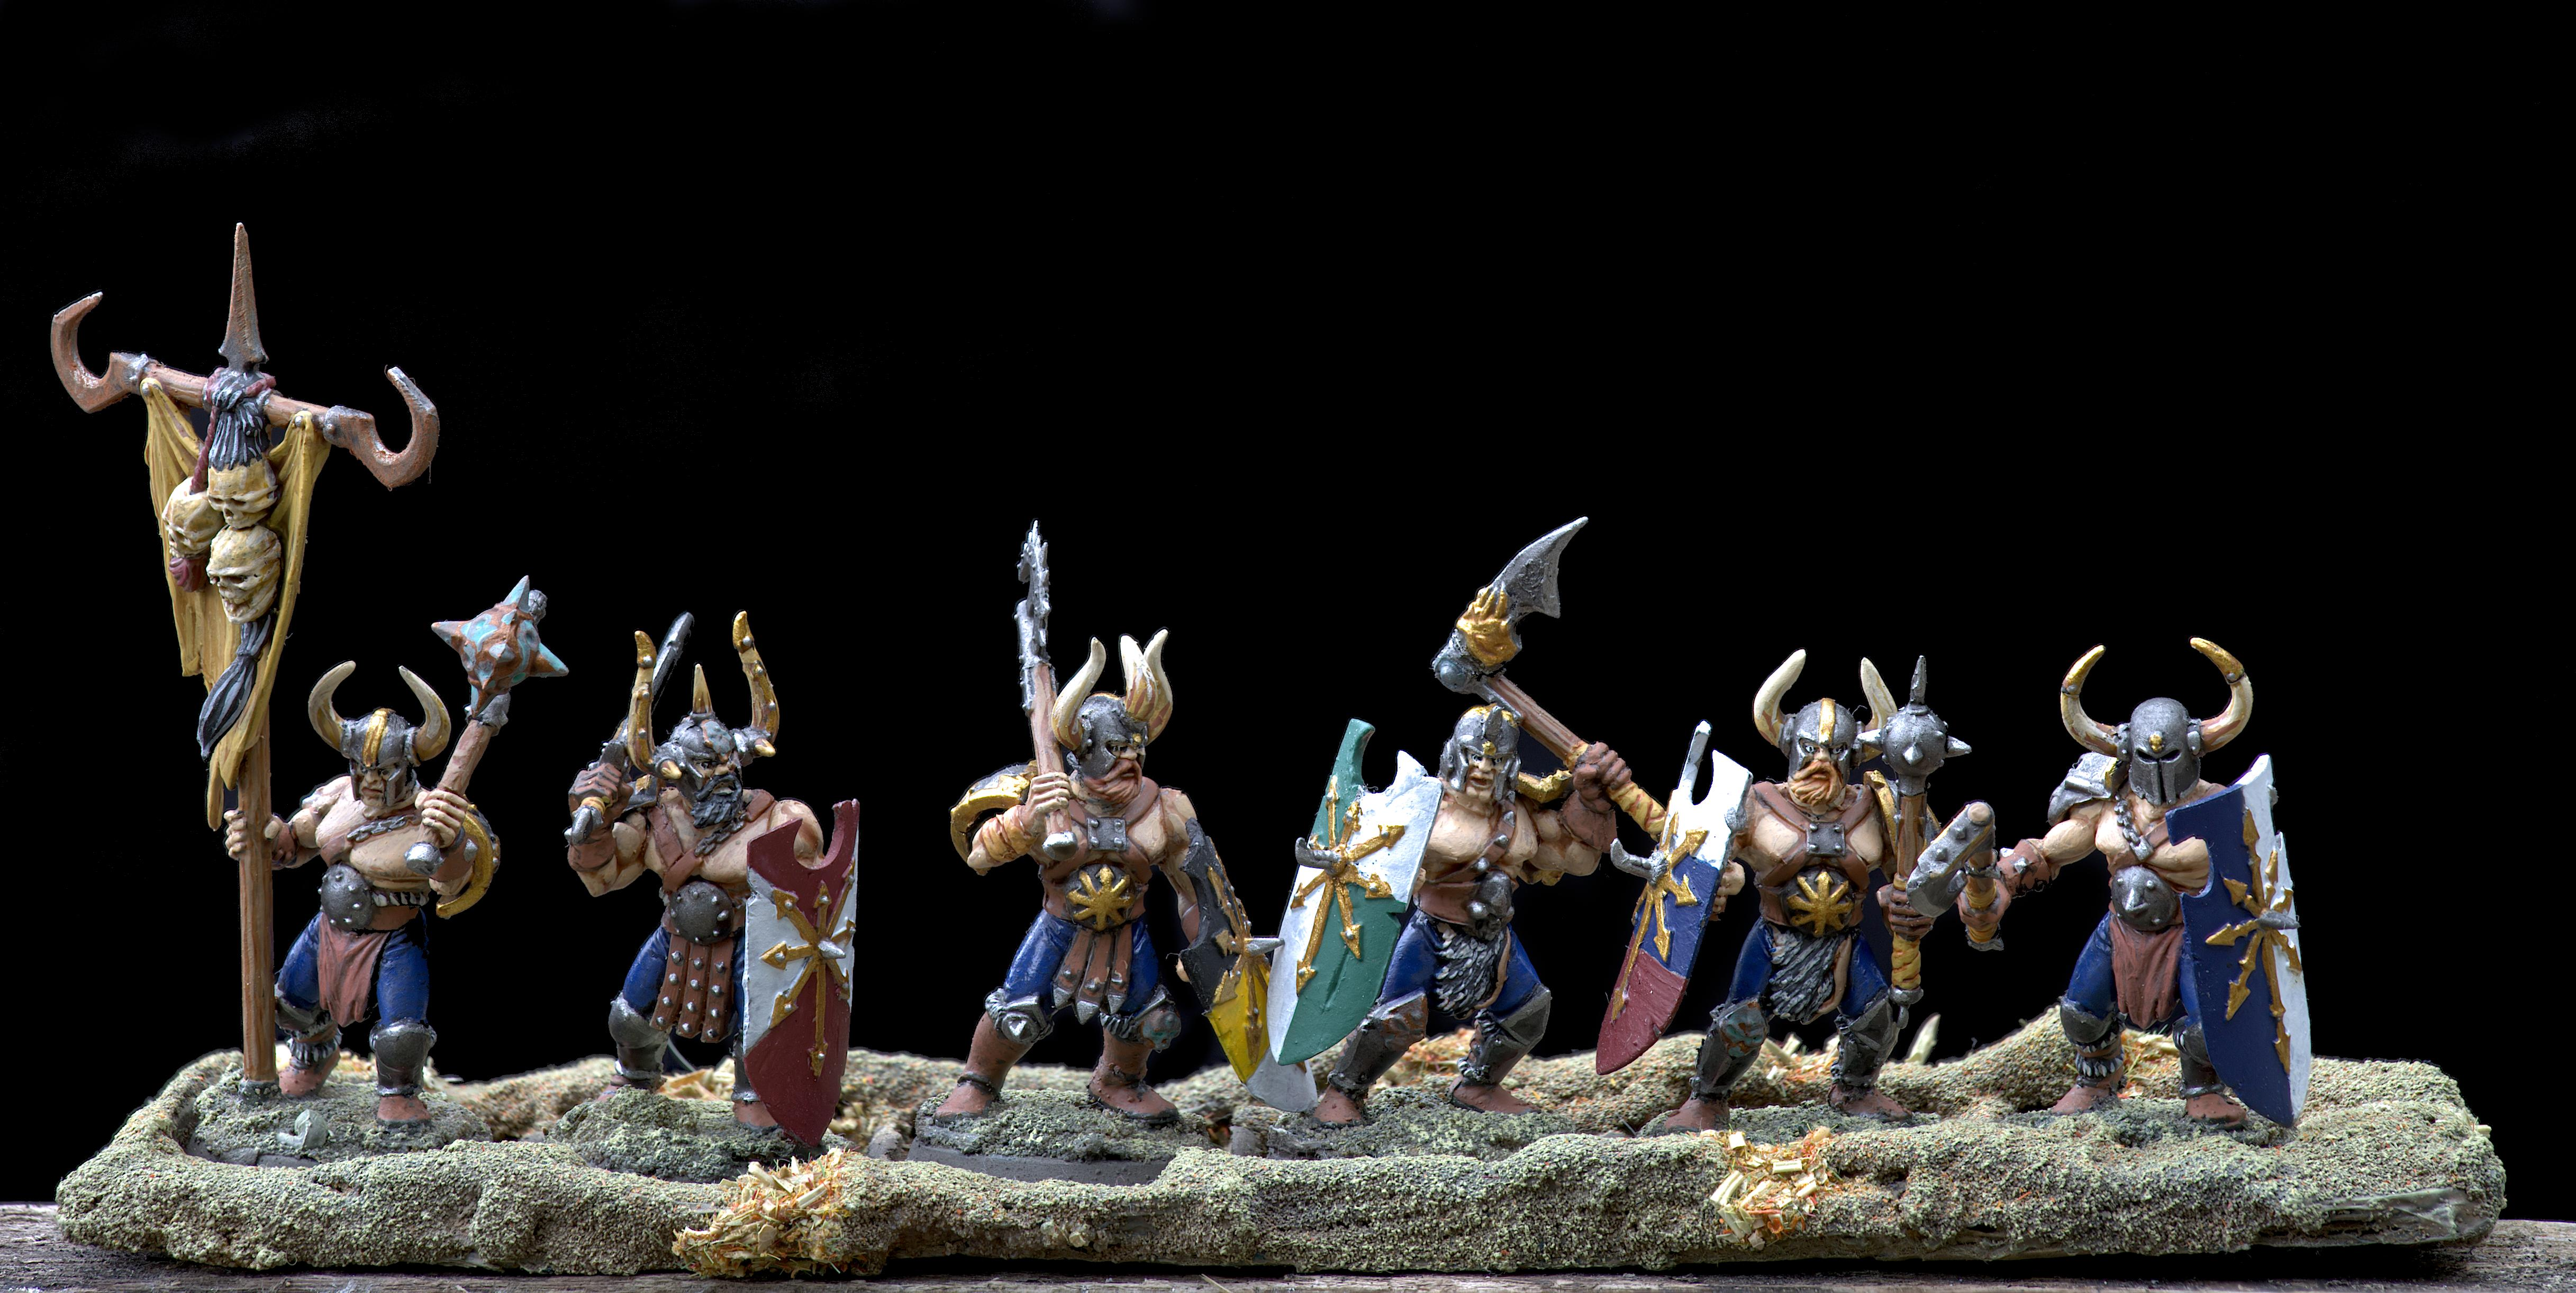 Age Of Sigmar, Axe, Banner, Barbarian, By Andrey Mishuta, Chaos, Chaos Undivided, Conversion, M.a.k., Marauders, Mutation, Norsca, Outdoors, Regiment, Slaves To Darkness, Warband, Warhammer Fantasy, Warriors